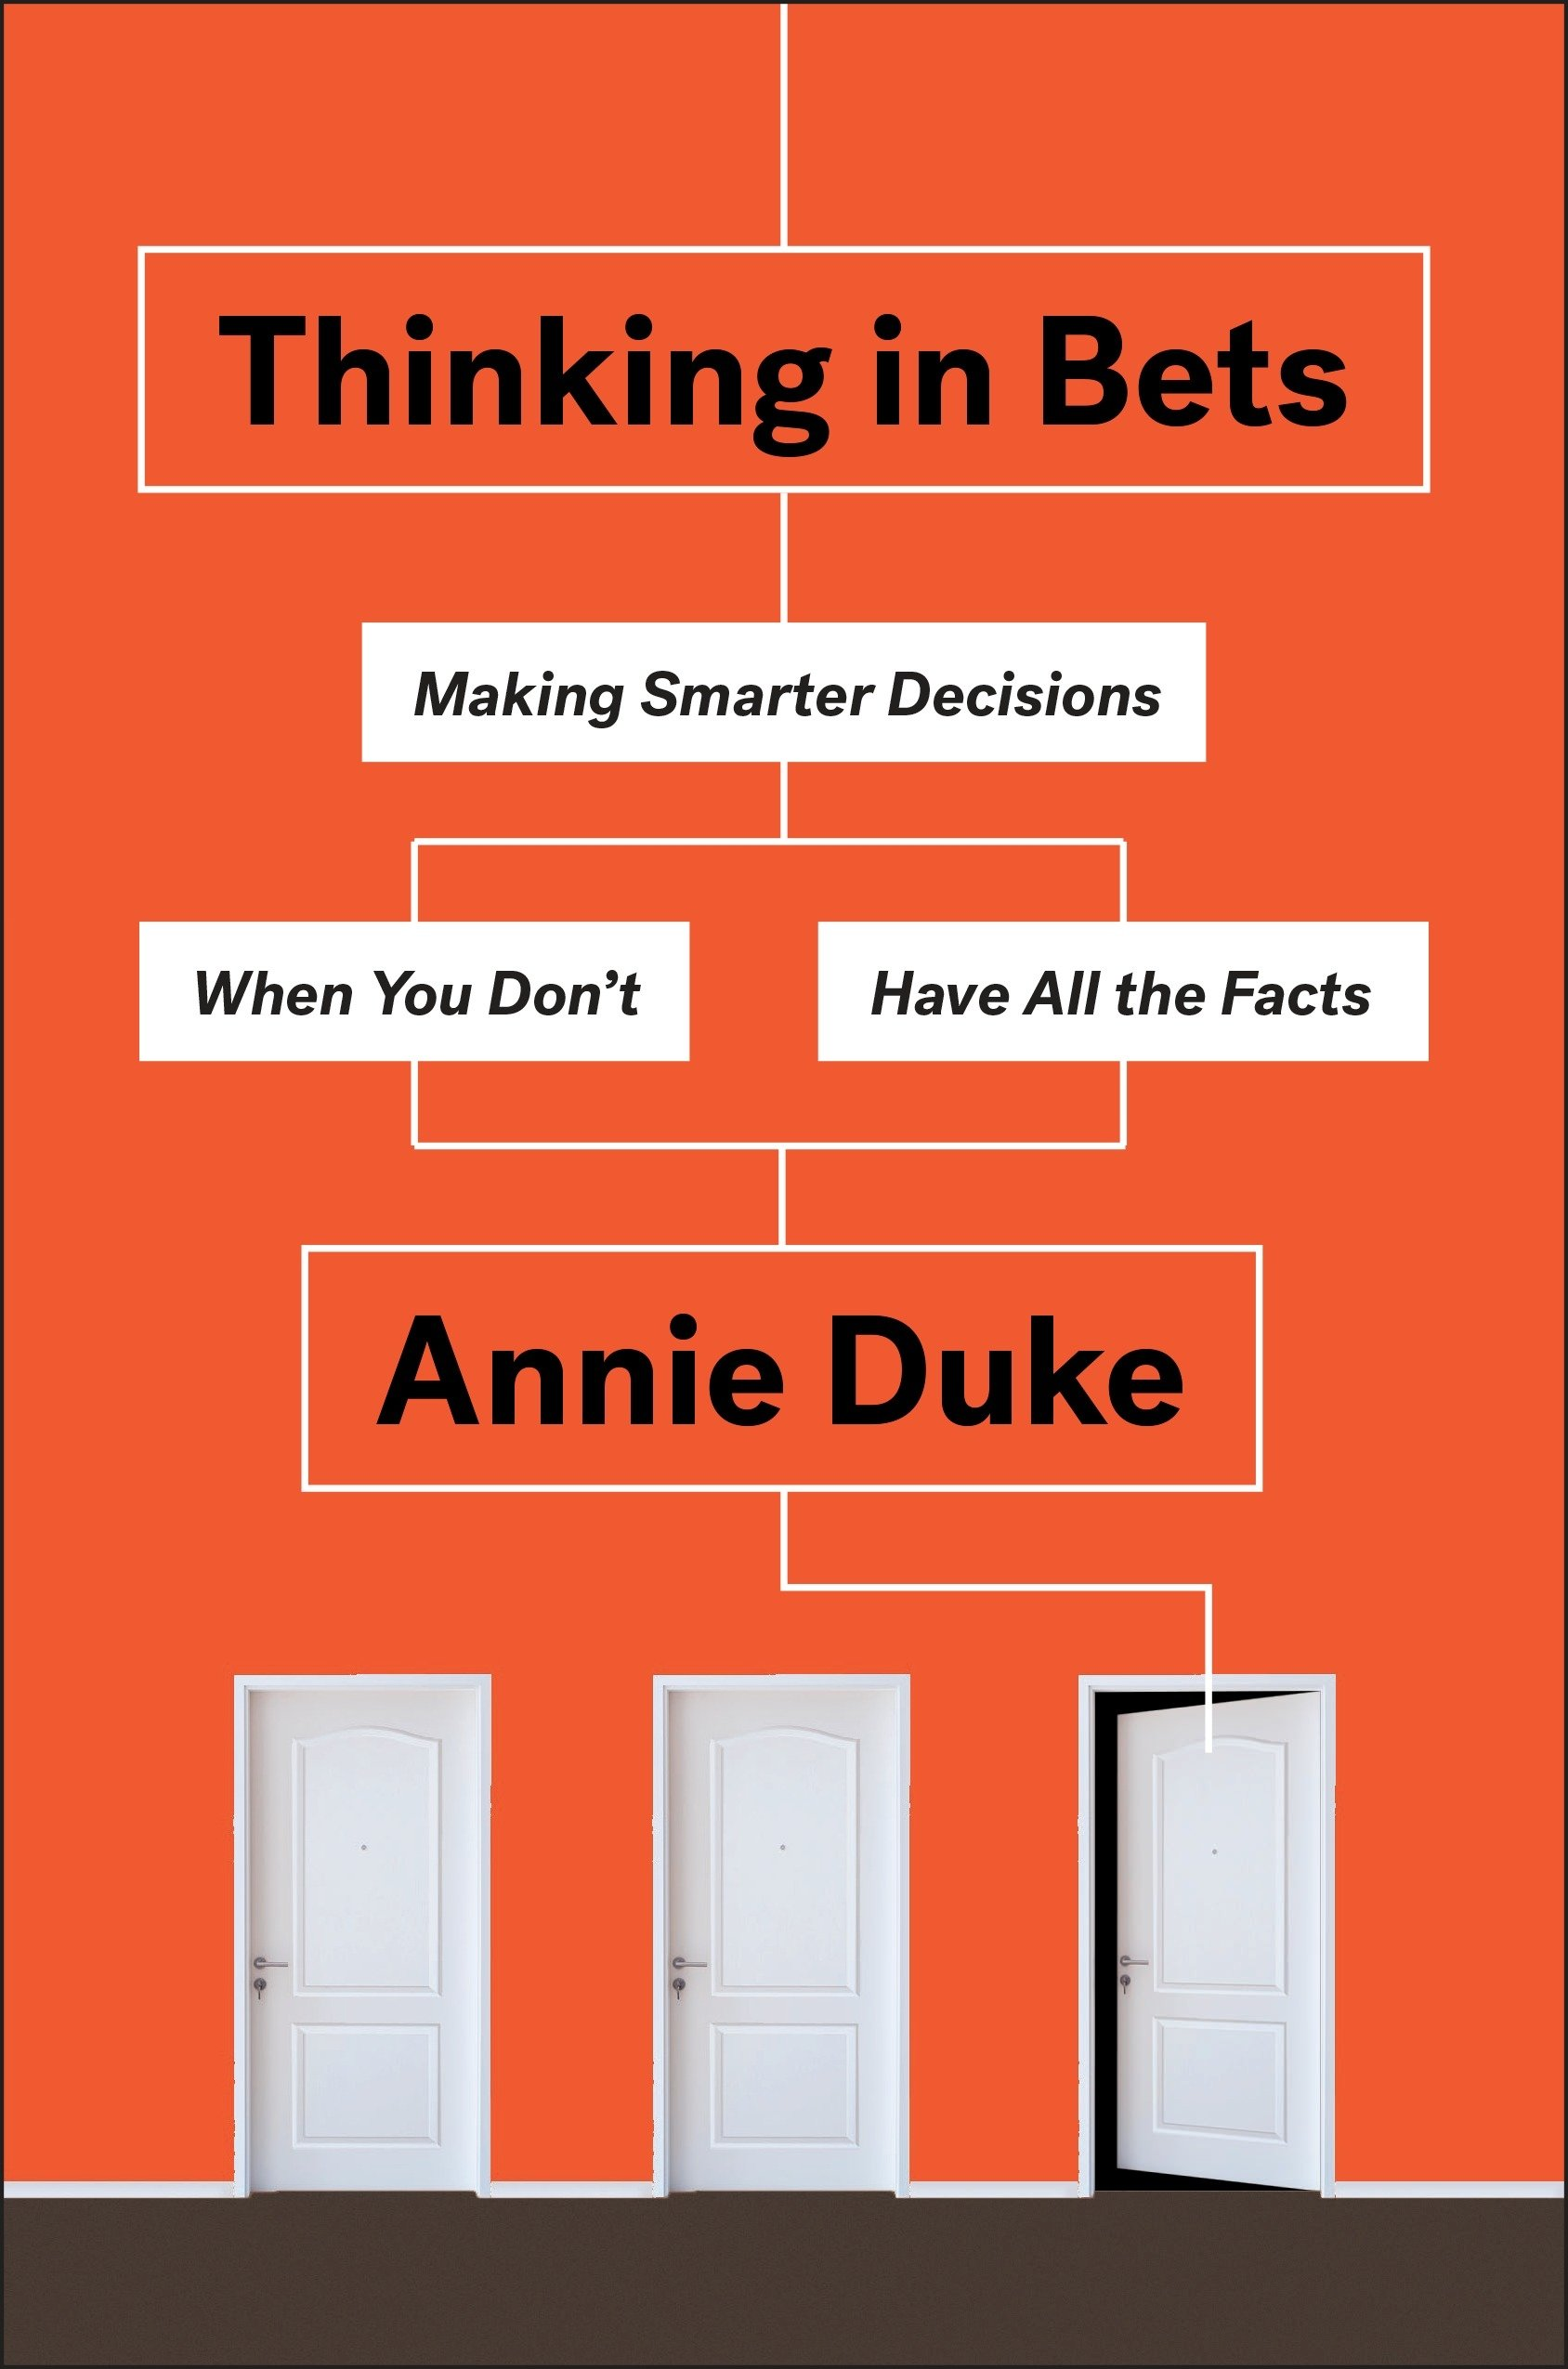 Thinking in Bets - Author: Annie Duke